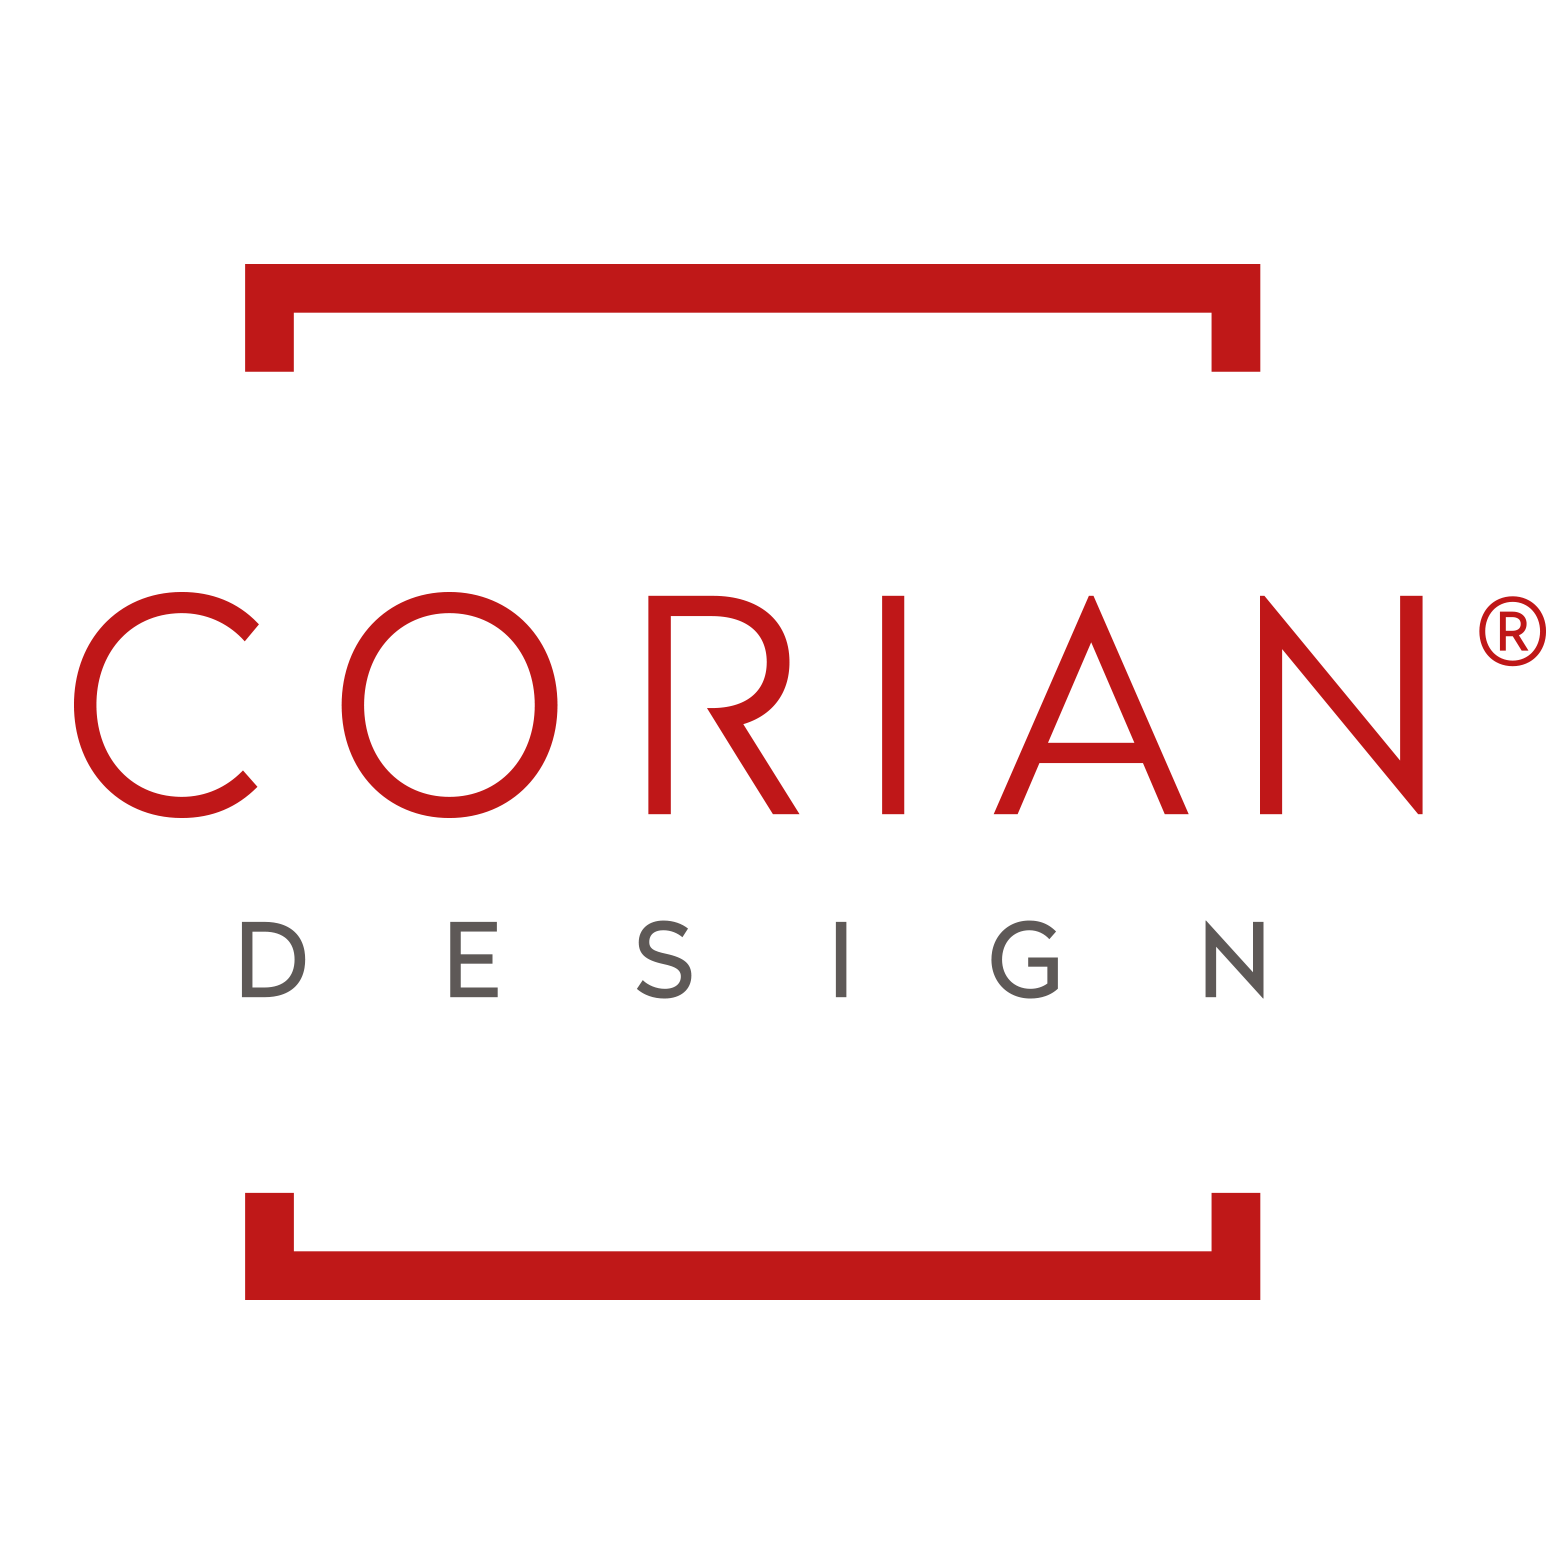 For Decades, The Seamless Integration Of Corian® Shapes And Sheets Has  Provided A Superior And Reliable Combination Of Beauty, Quality And Hygiene  To ...